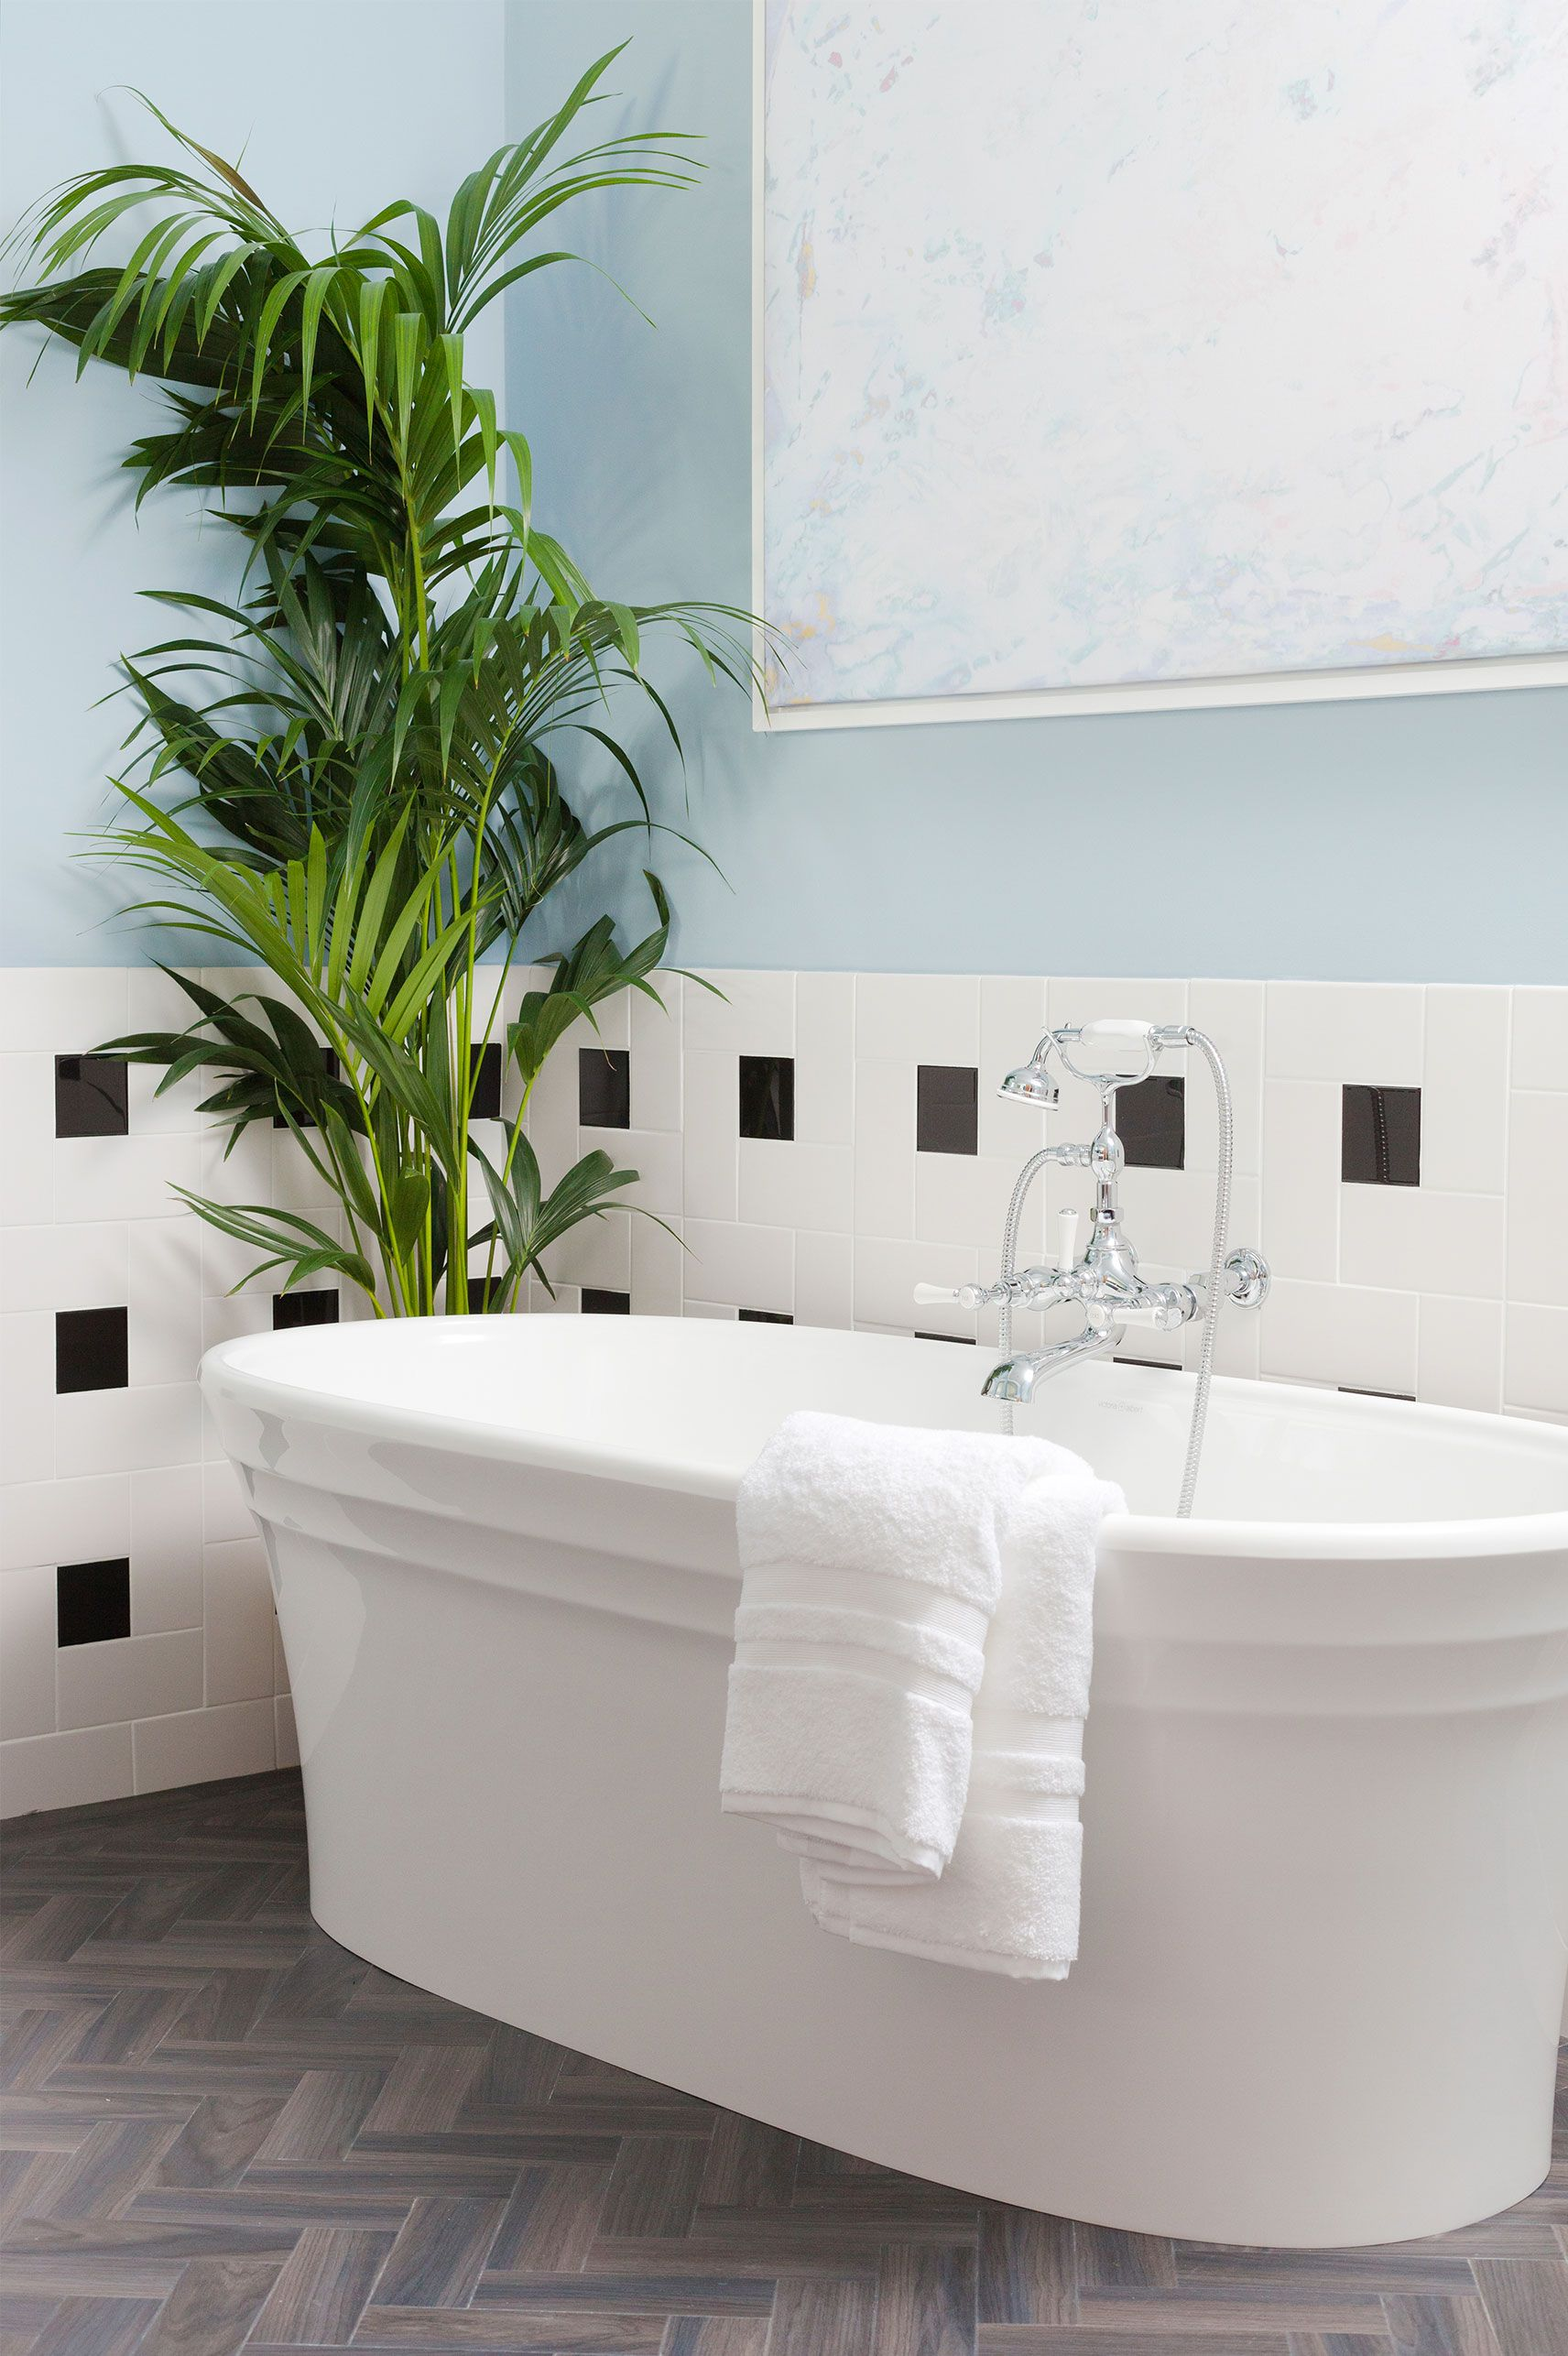 28 Bathroom Decorating Ideas on a Budget - Chic and ... on Bathroom Ideas On A Budget  id=62705